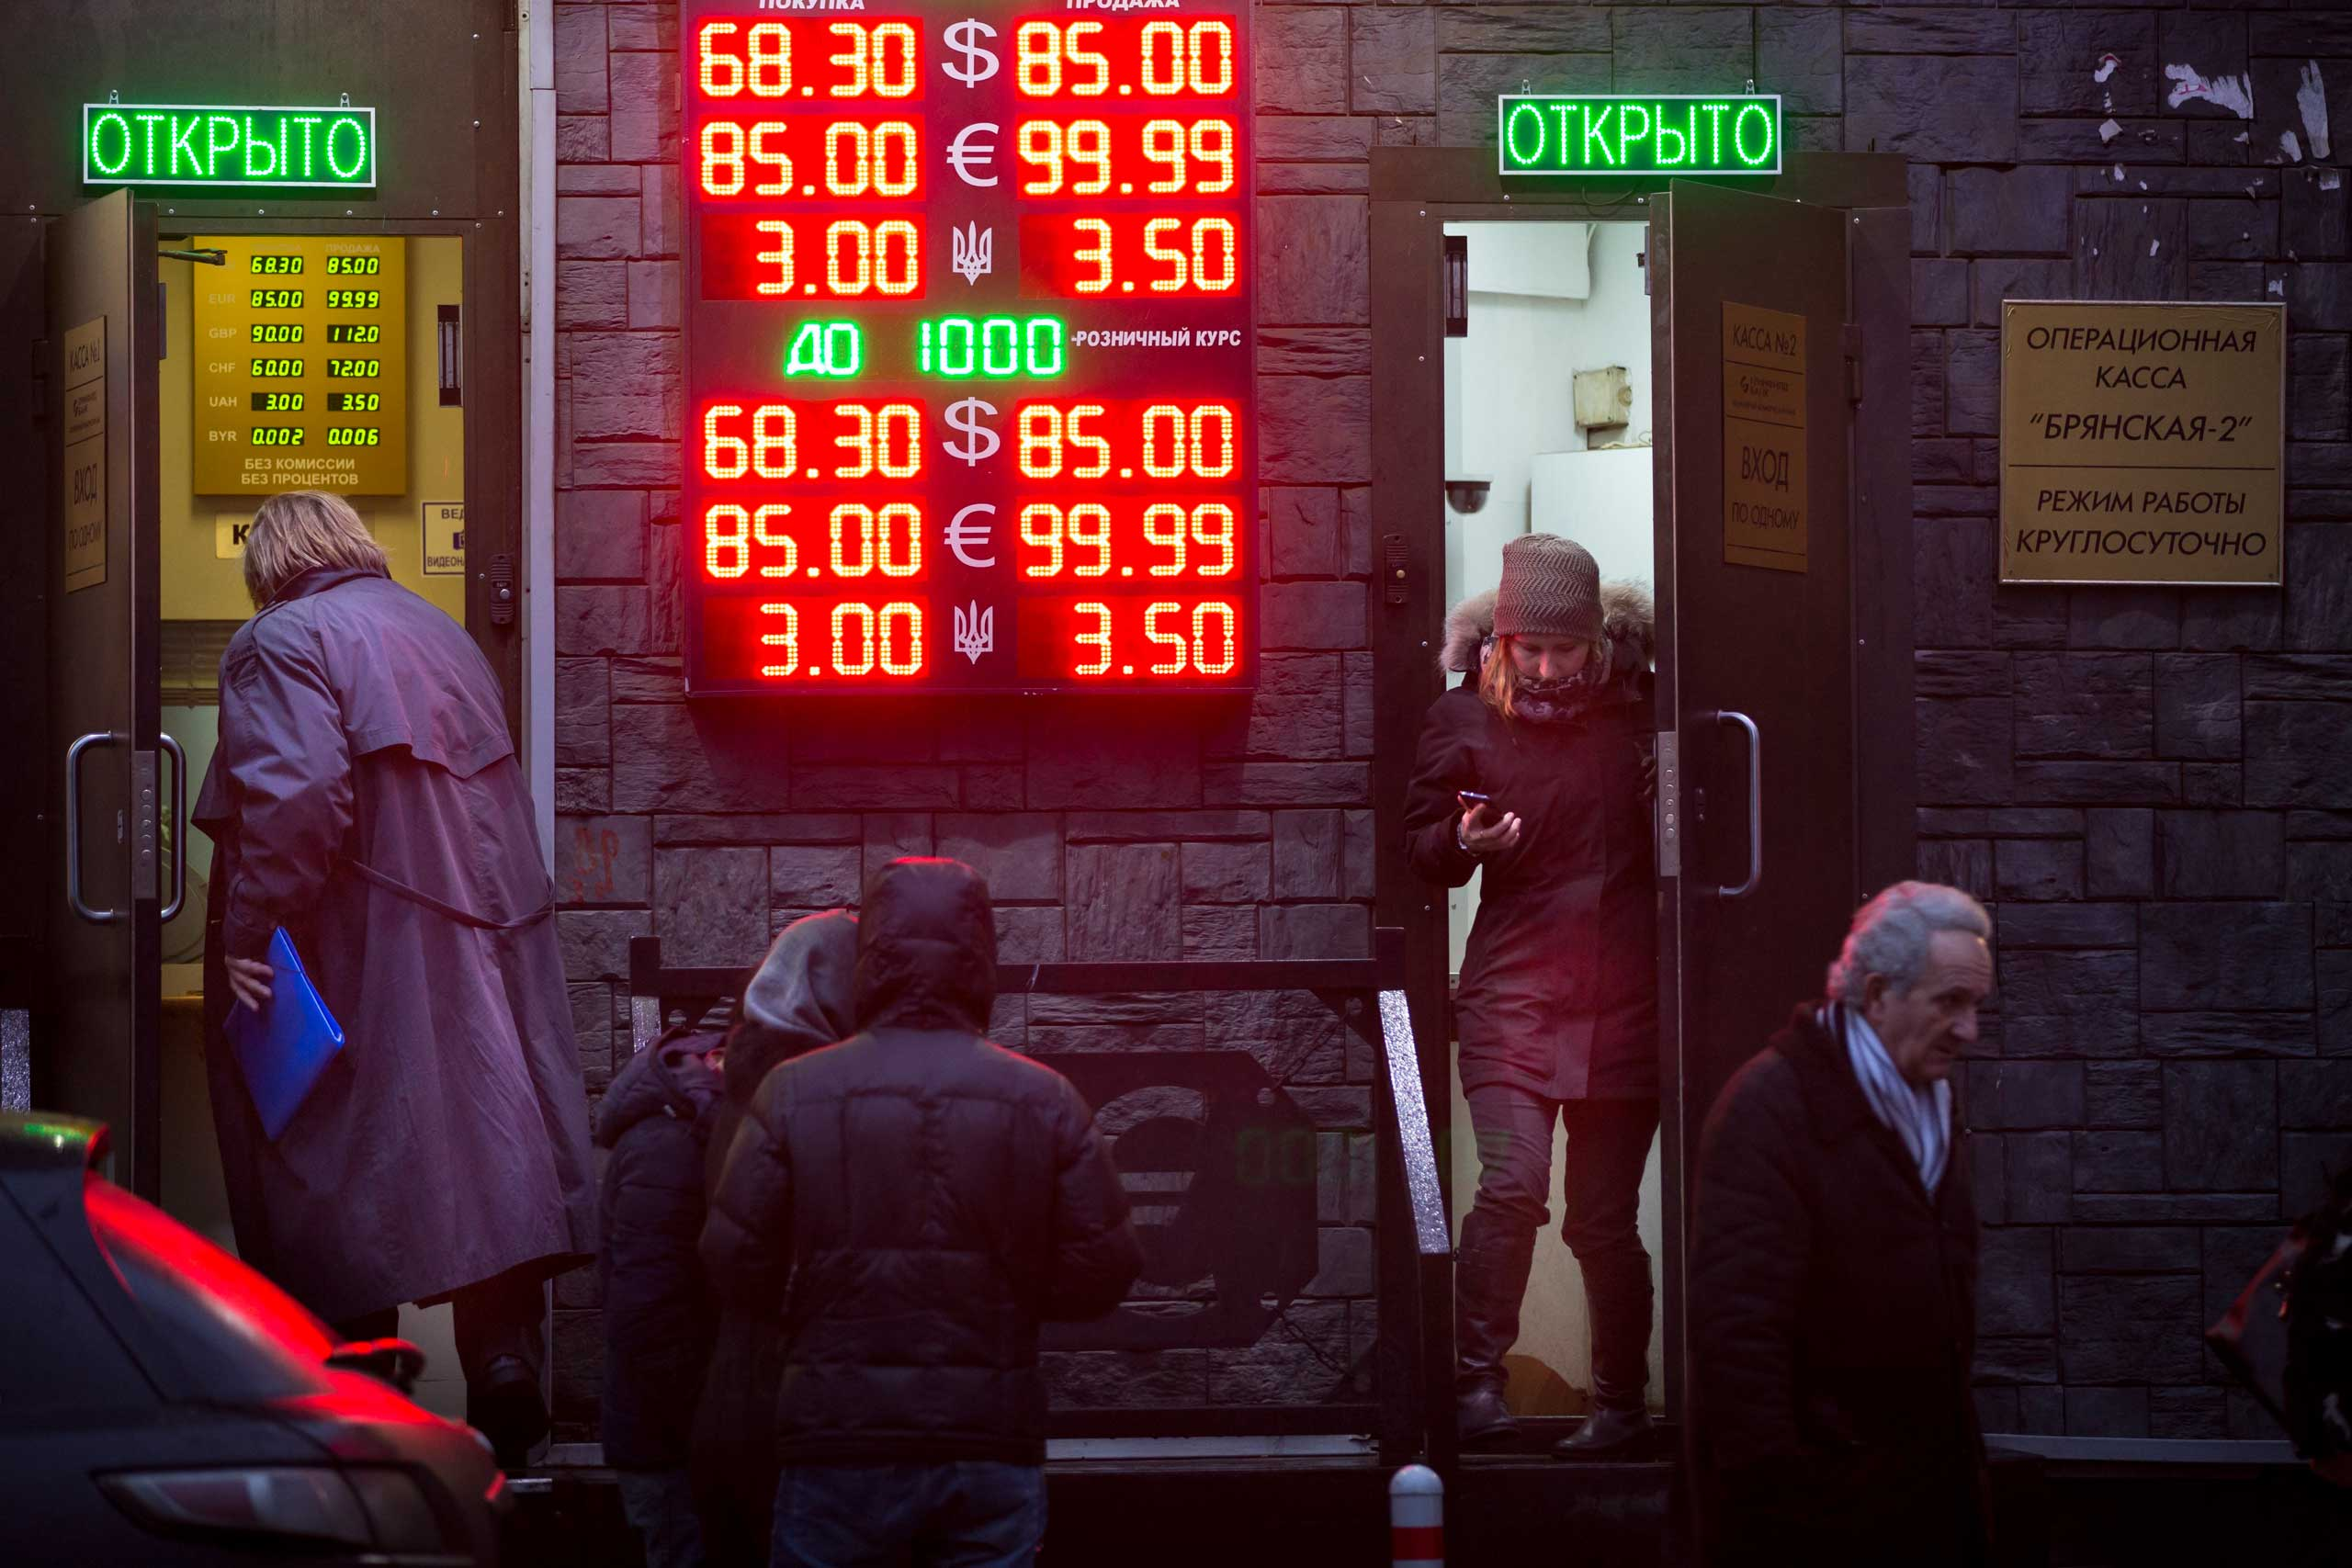 People wait to exchange their currency as  signs advertise the exchange rates at a currency  exchange office in Moscow, Dec. 16, 2014.